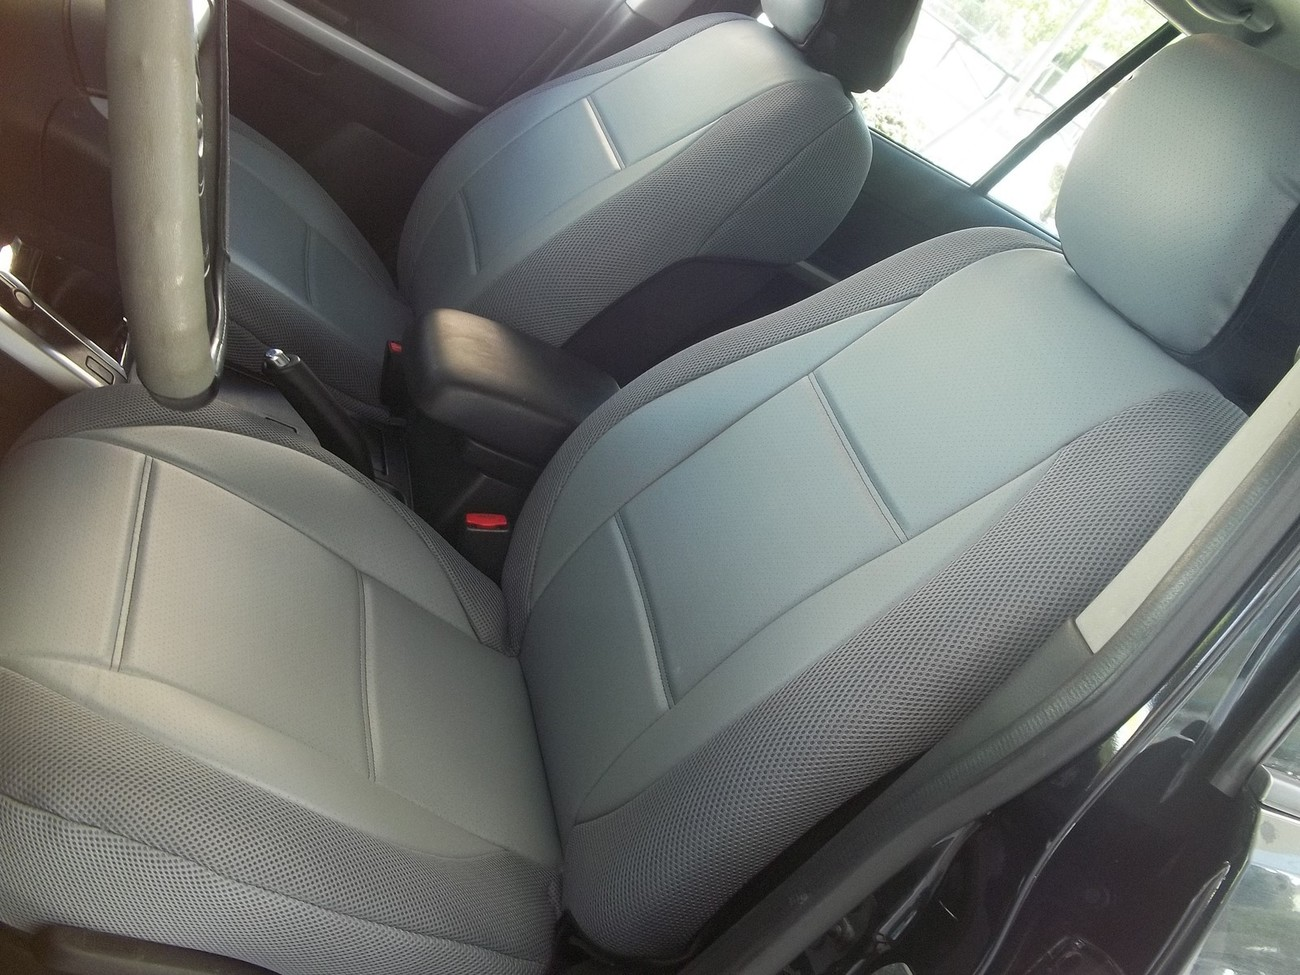 2013 Toyota Tacoma Seat Covers Autos Post